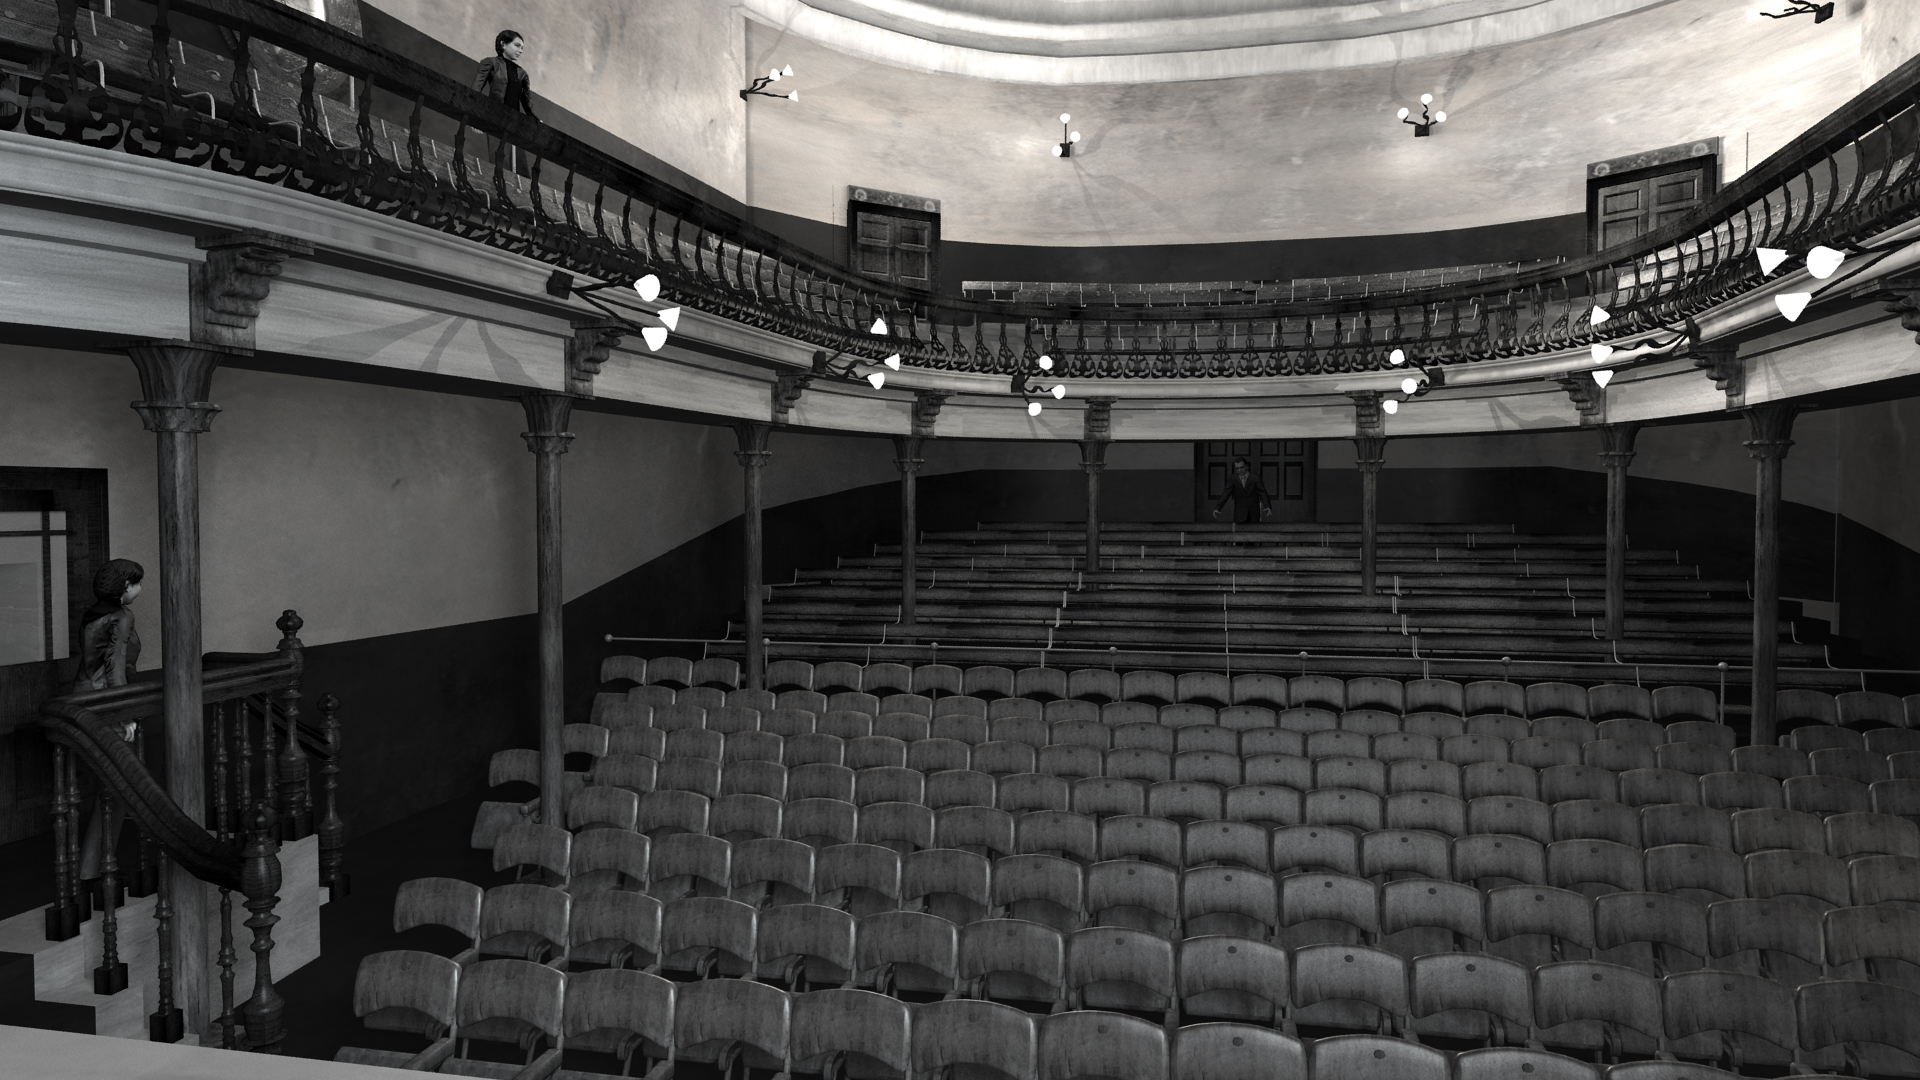 View from stage of Abbey Theatre, 1904. Digital model by Hugh Denard (research) and Niall Ó hOisín/Noho (modelling), 2011.